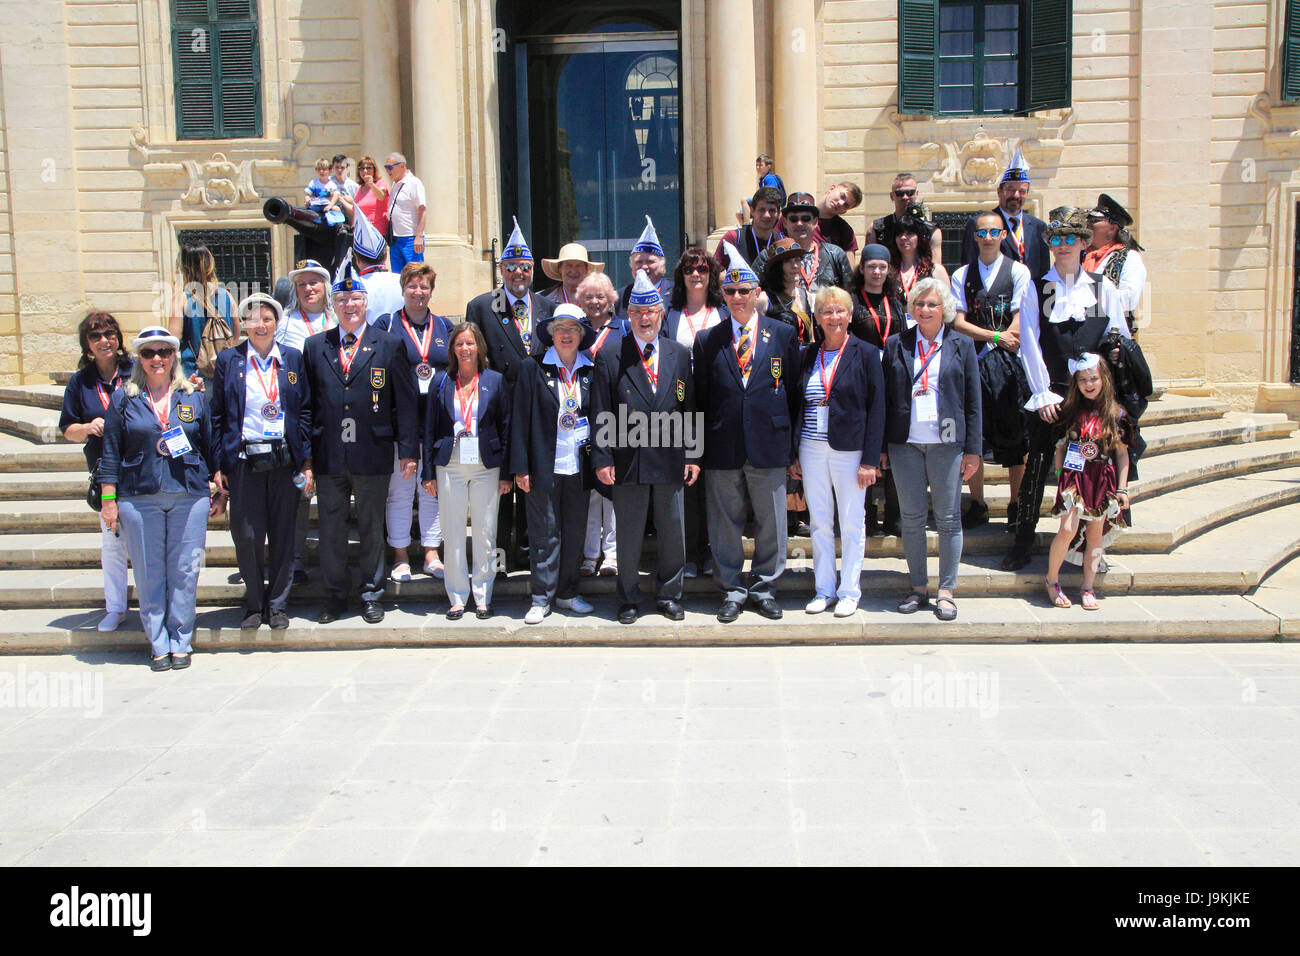 Tour group photo of carnival organisers on steps of Auberge de Castille palace in city centre of Valletta, Malta - Stock Image